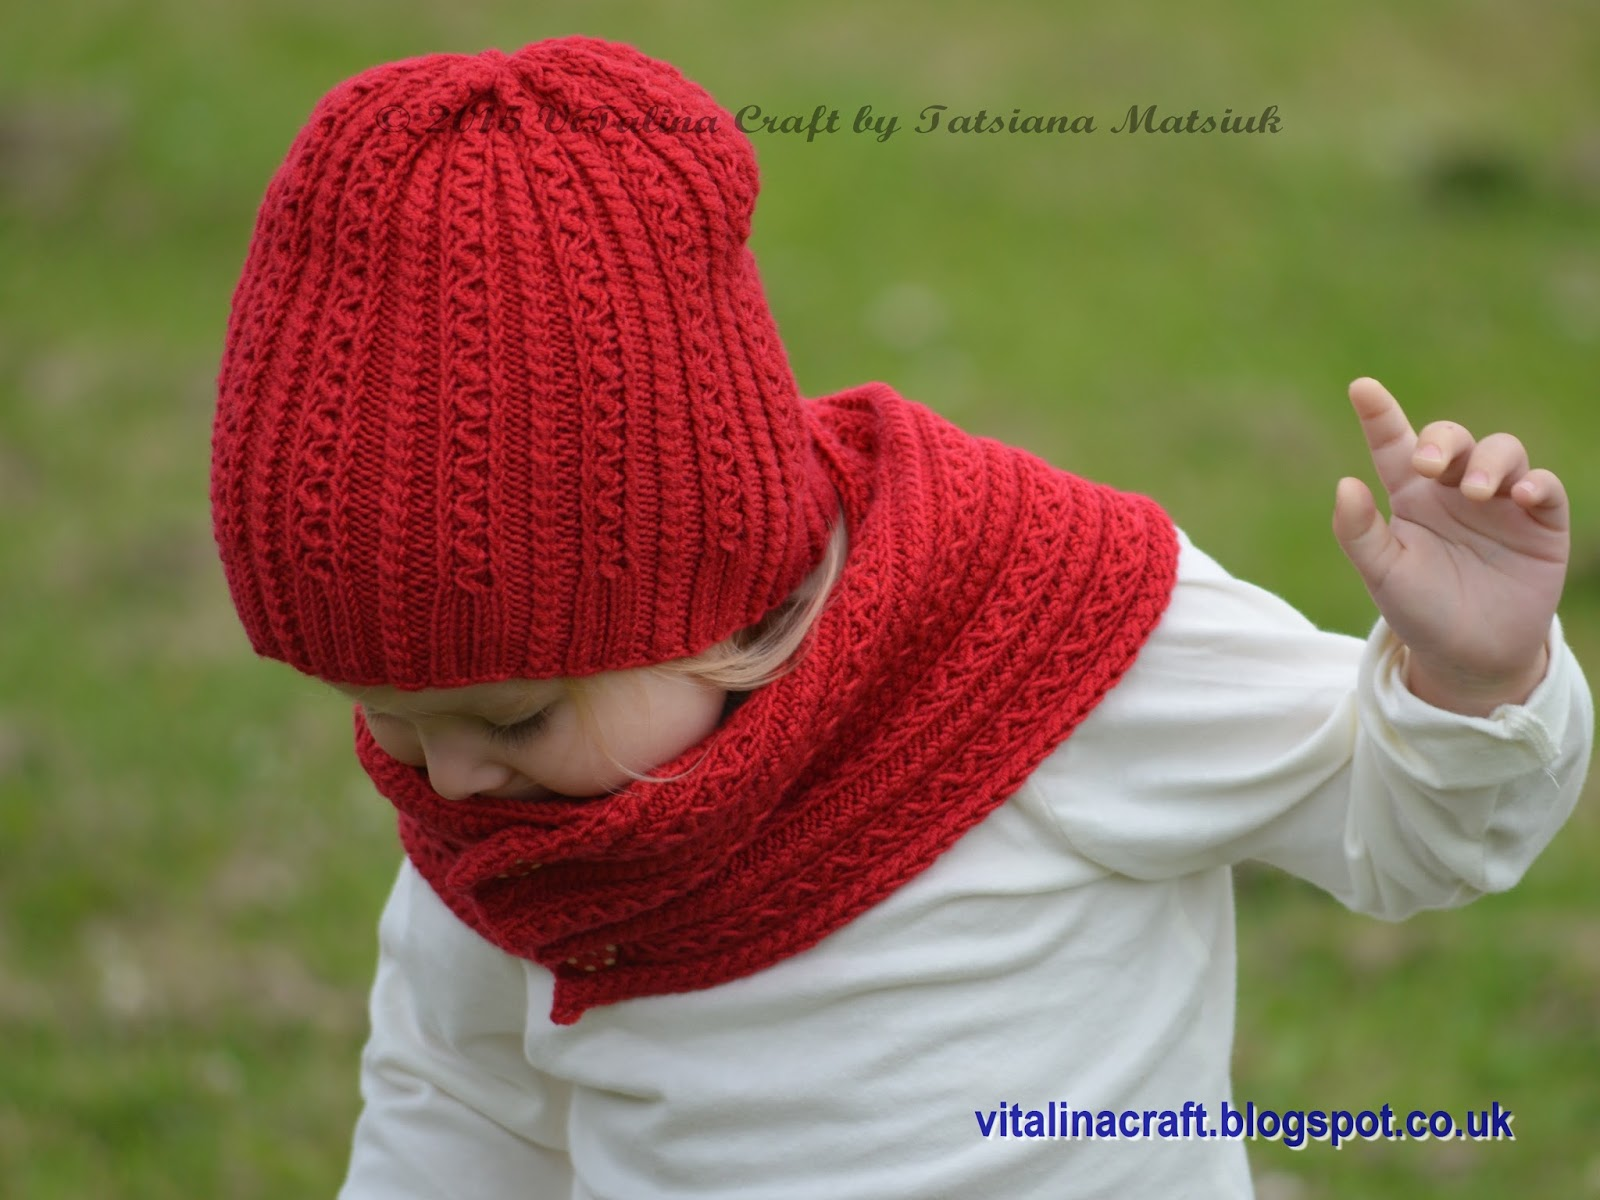 Knitting Patterns Scarves And Hats : Tiny Cables Hat and Scarf ViTalina Craft